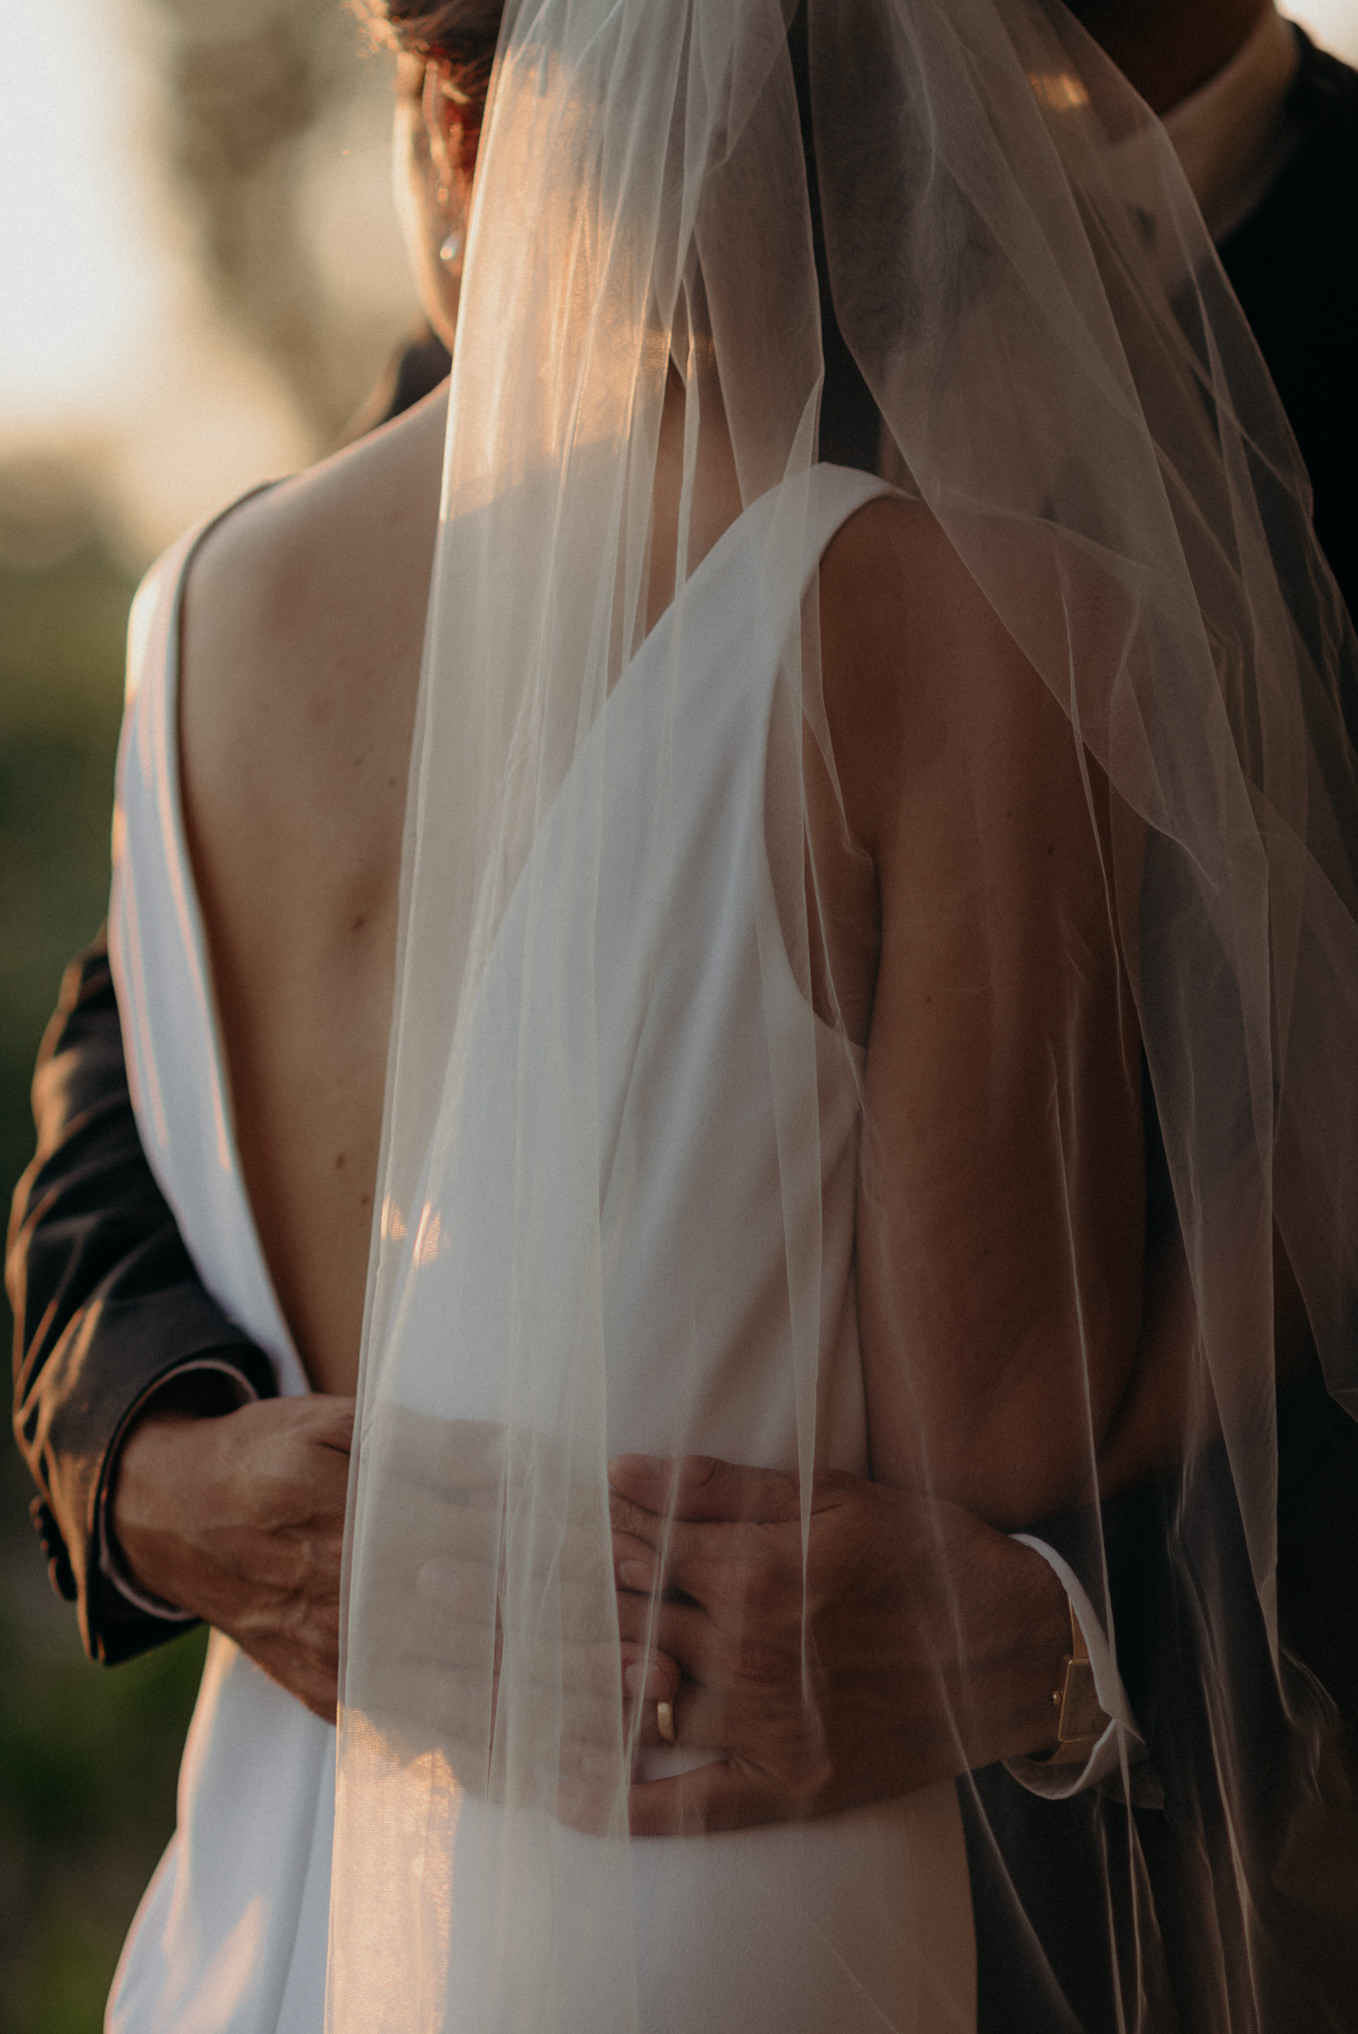 closeup of grooms hands on brides waist as they watch the sun set over a corn field